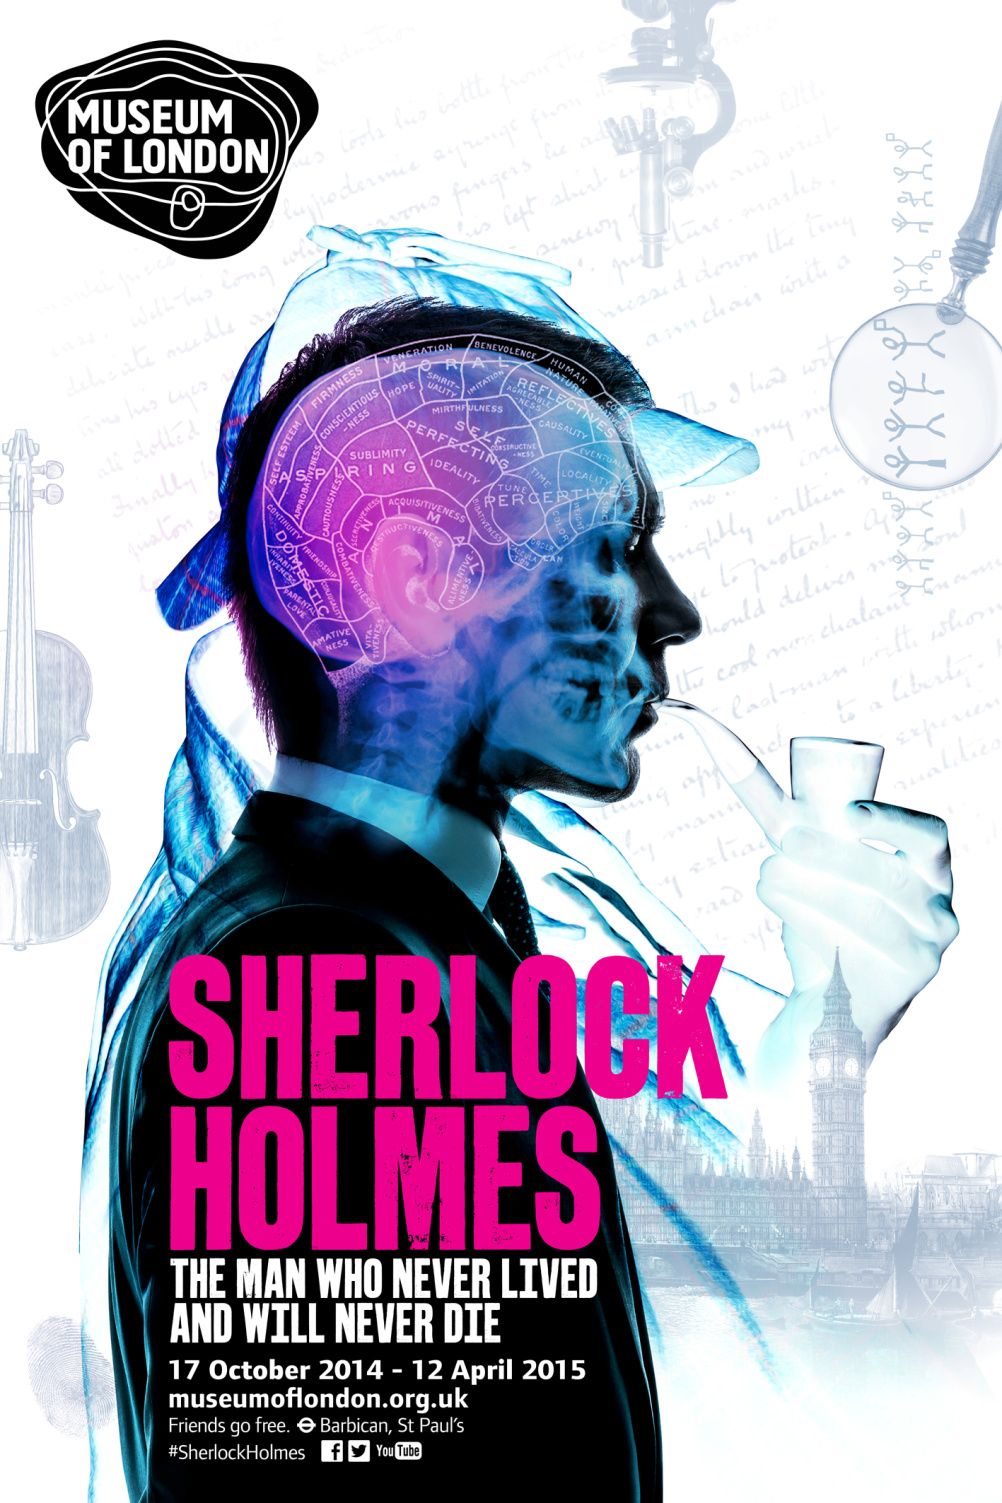 Sherlock Holmes: The Man Who Never Lived. Campaign design by AKA